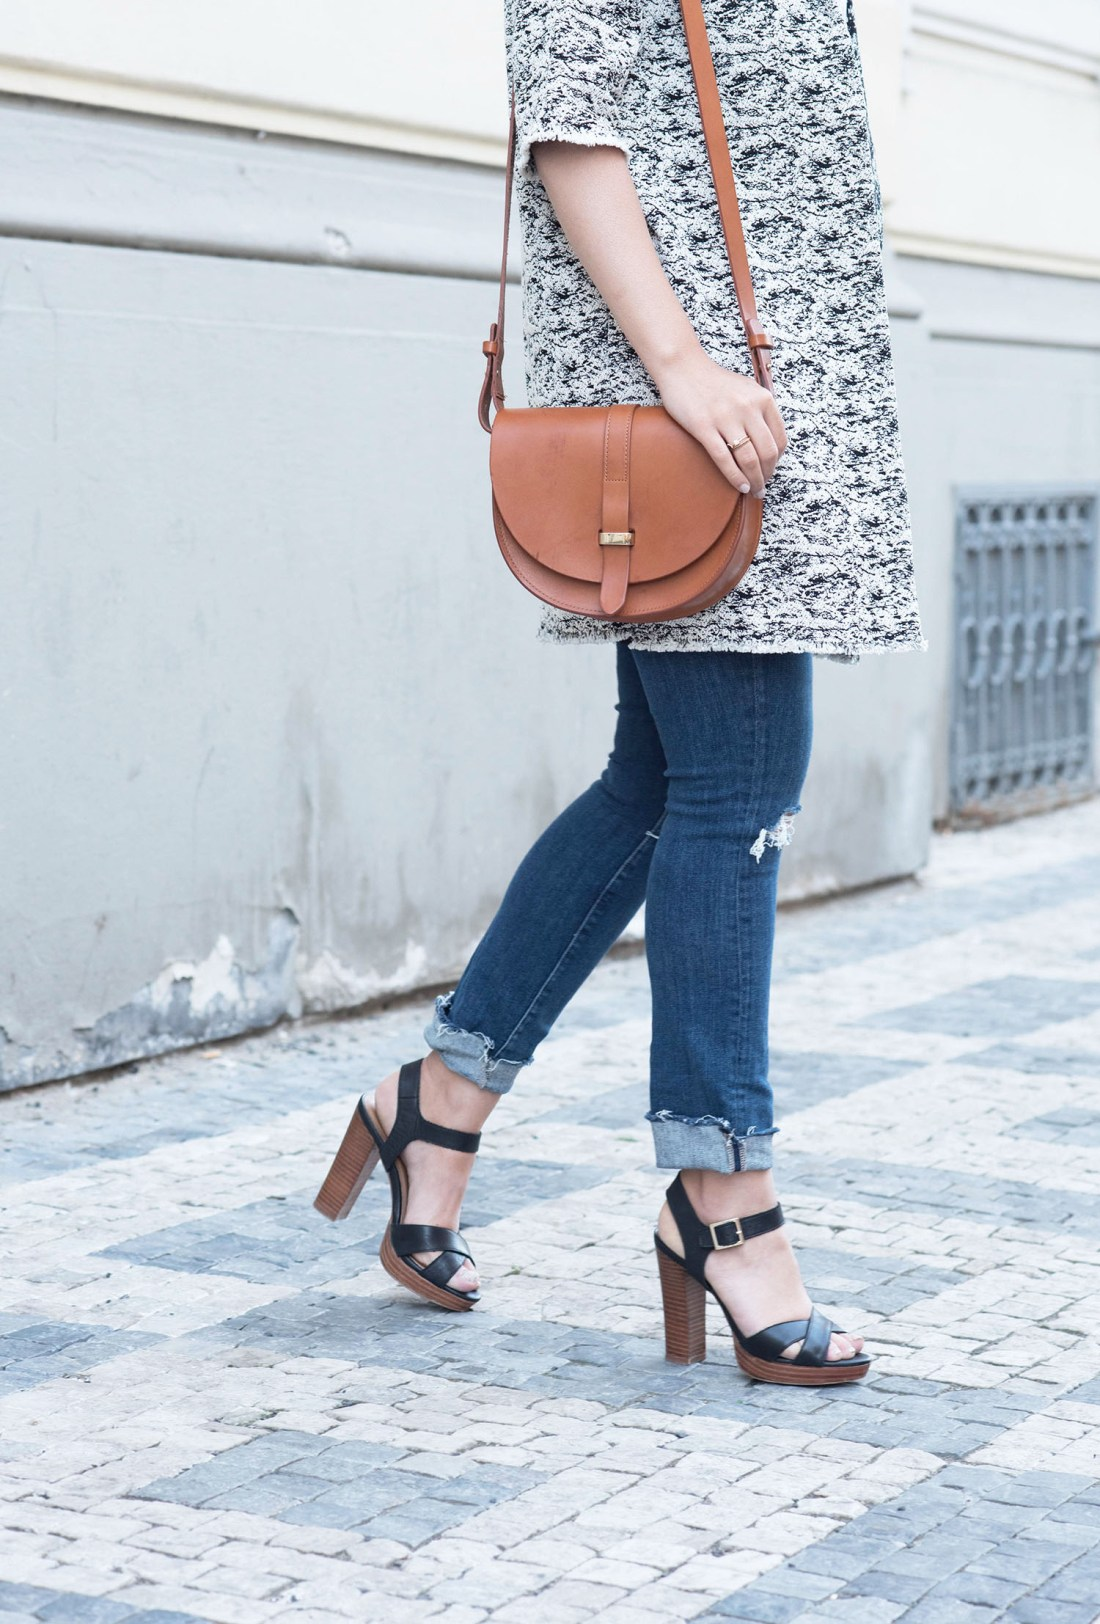 Outfit details on fashion blogger Cee Fardoe of Coco & Vera, including a Sezane Claude bag, Paige jeans and Le Chateau sandals